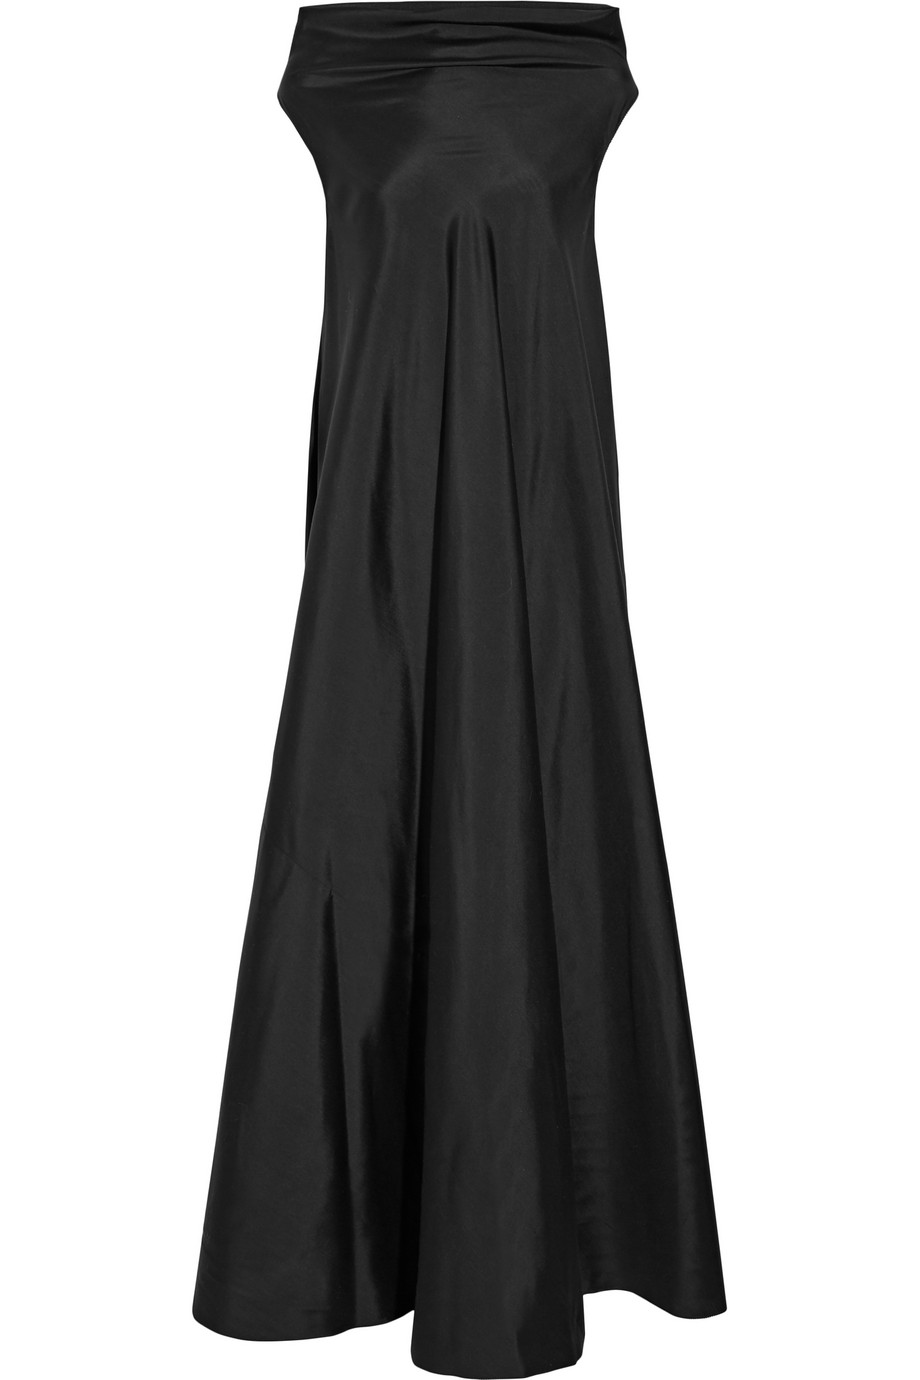 The Row Gen Draped Silk Gown, Black, Women's, Size: XS